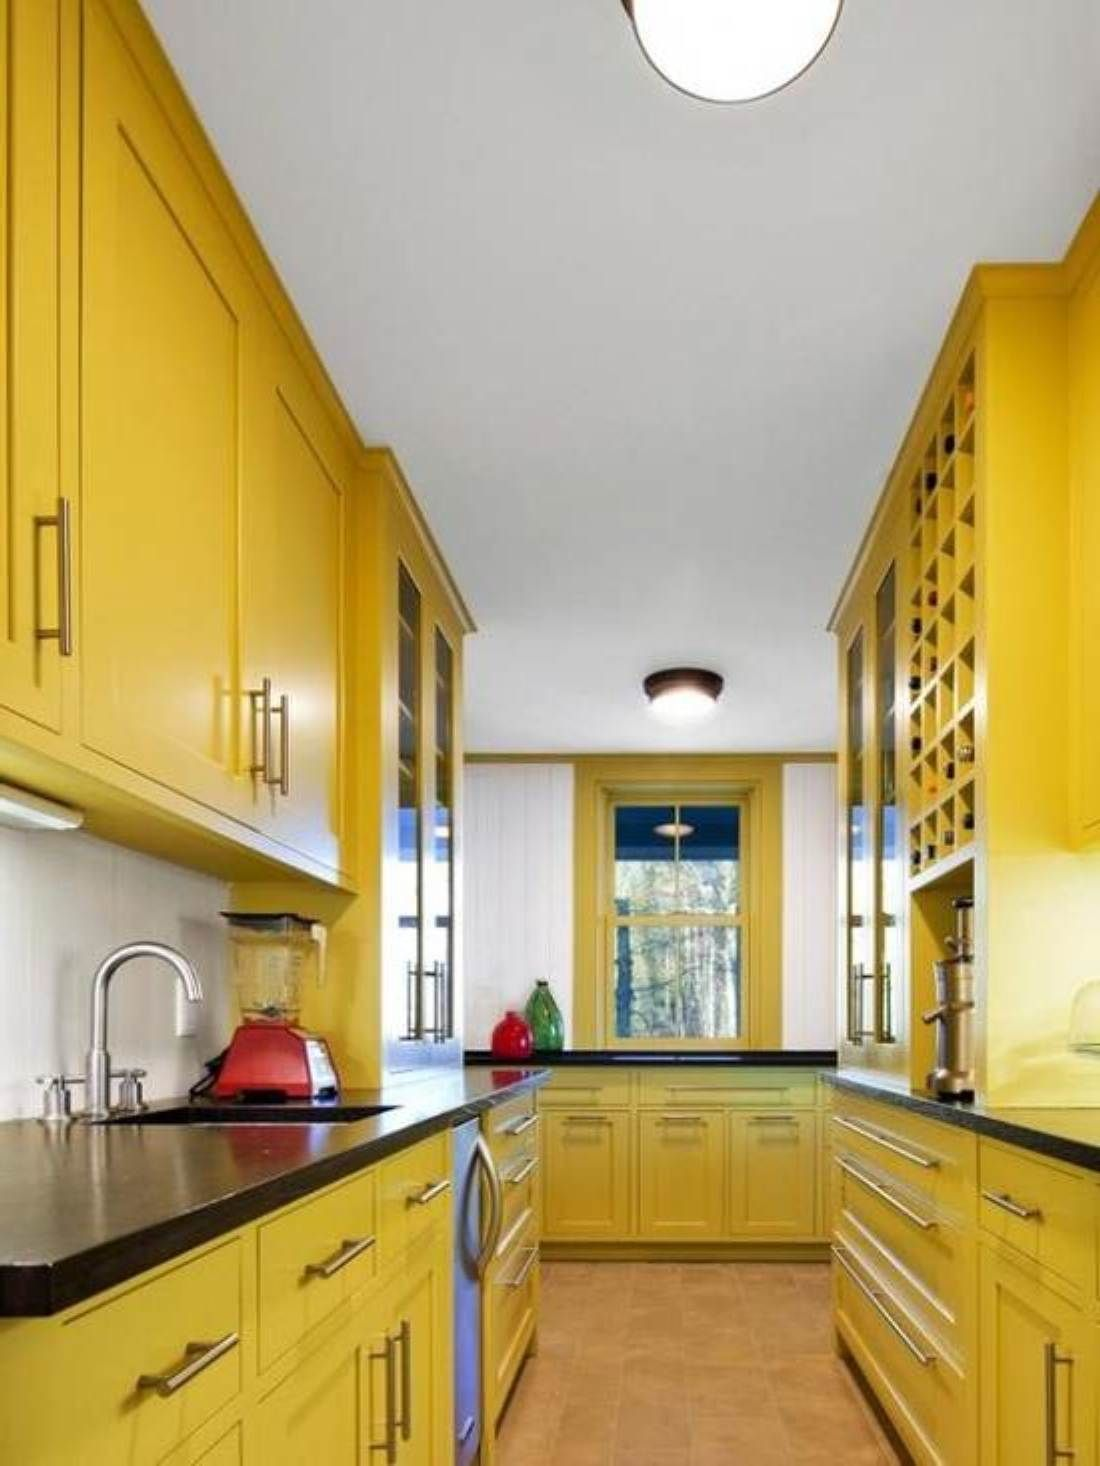 yellow kitchen cabinet paint colors painted kitchen cabinets colors kitchen cupboards paint on kitchen interior yellow and white id=41926